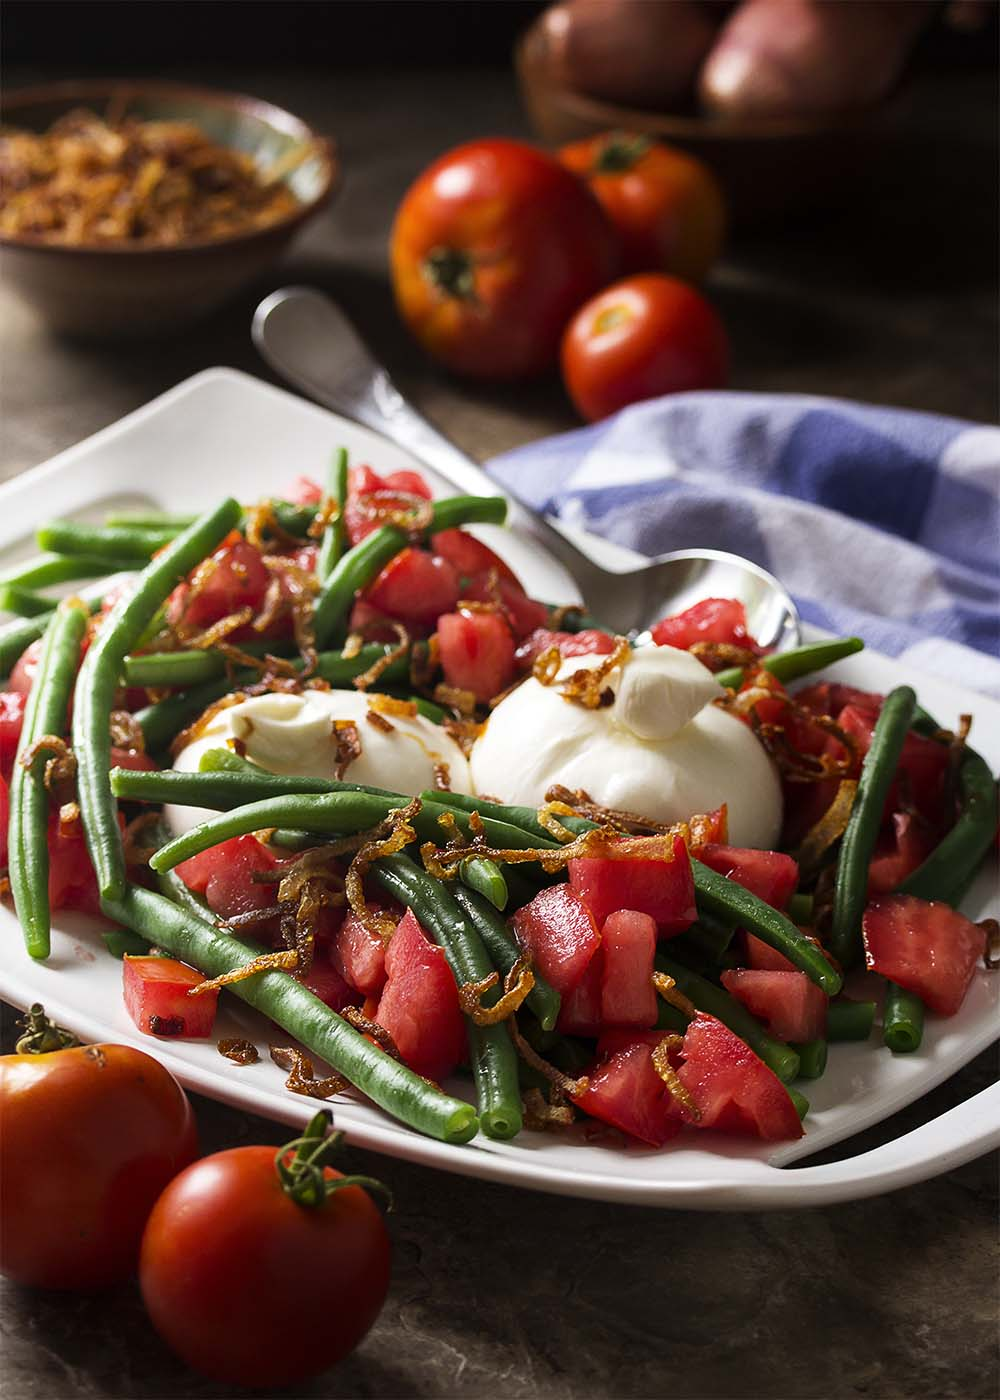 Creamy burrata, crispy shallots and ripe tomatoes along with fresh green beans give my Italian green bean salad plenty of flavor and balance. Add in a homemade Italian dressing and you'll want to make this salad every week! | justalittlebitofbacon.com